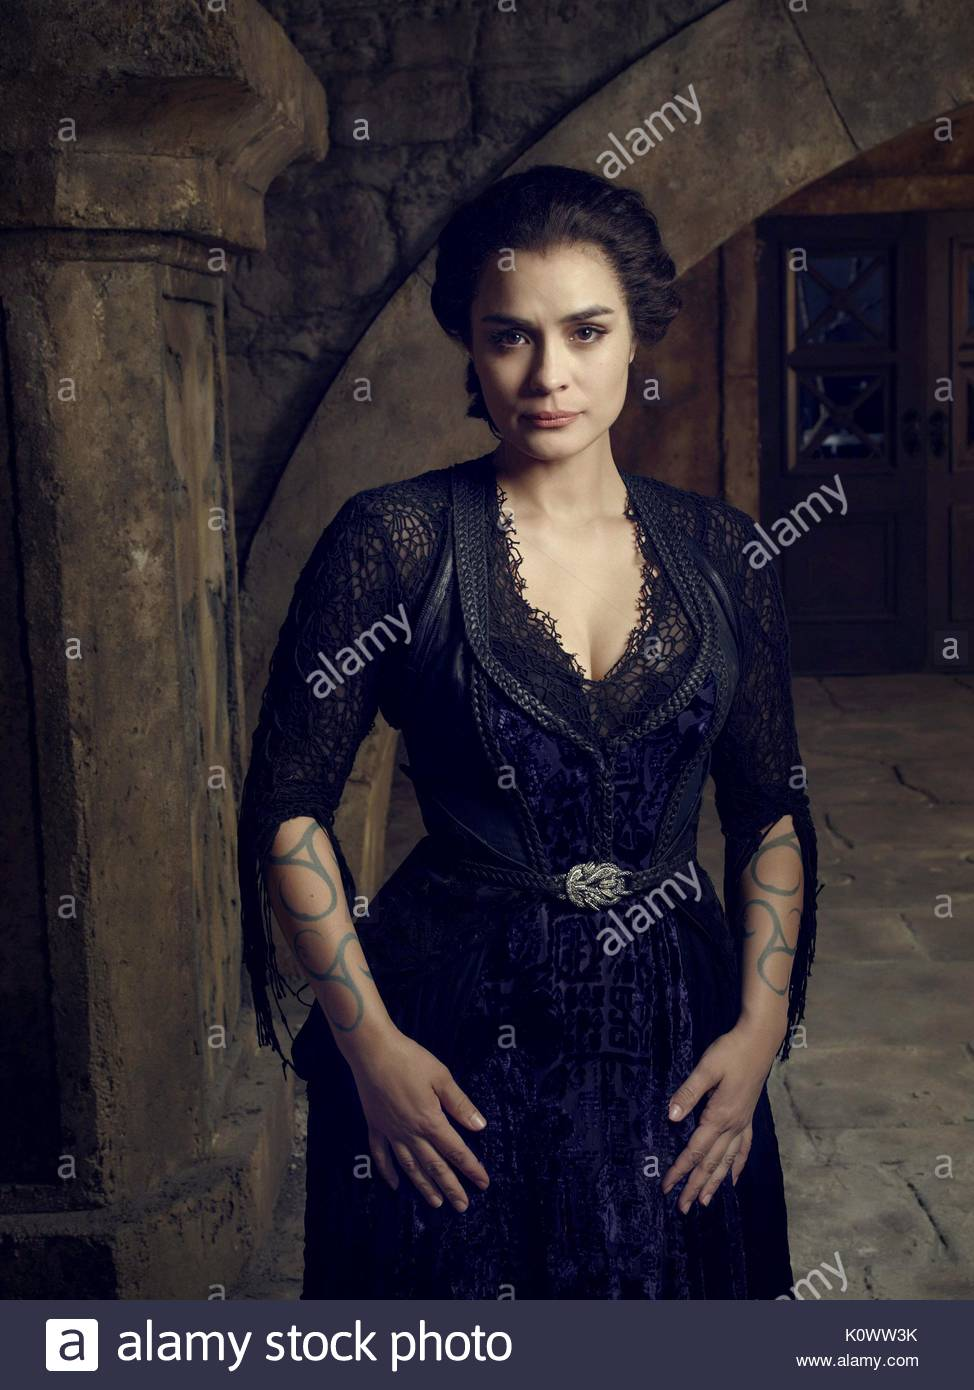 SHANNYN SOSSAMON SLEEPY HOLLOW : SEASON 3 (2015) - Stock Image